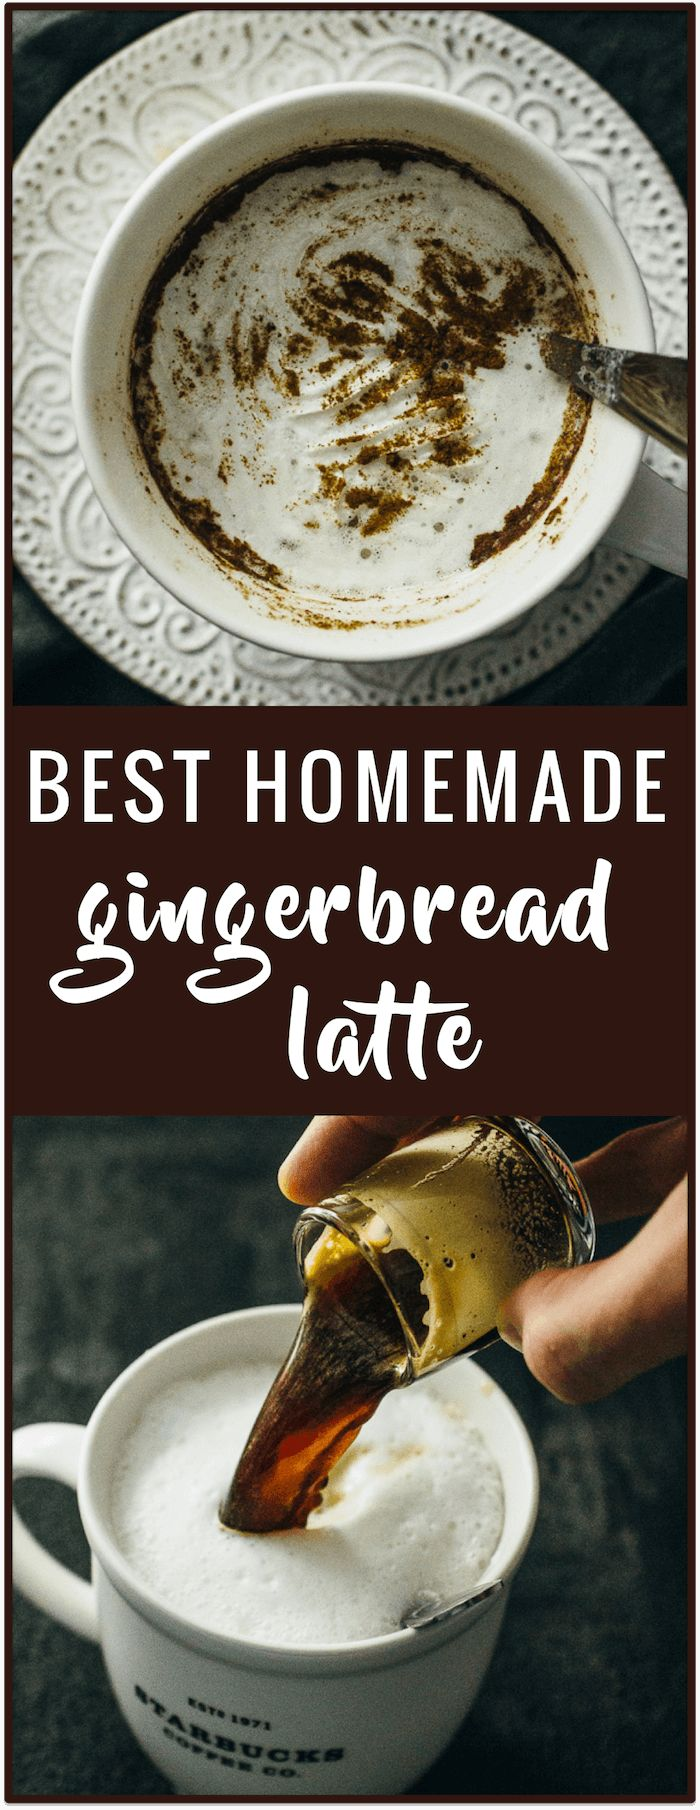 Homemade gingerbread latte - This is a simple recipe for making your own gingerbread latte at home. All you need is espresso coffee, milk, gingerbread spices, and sugar.